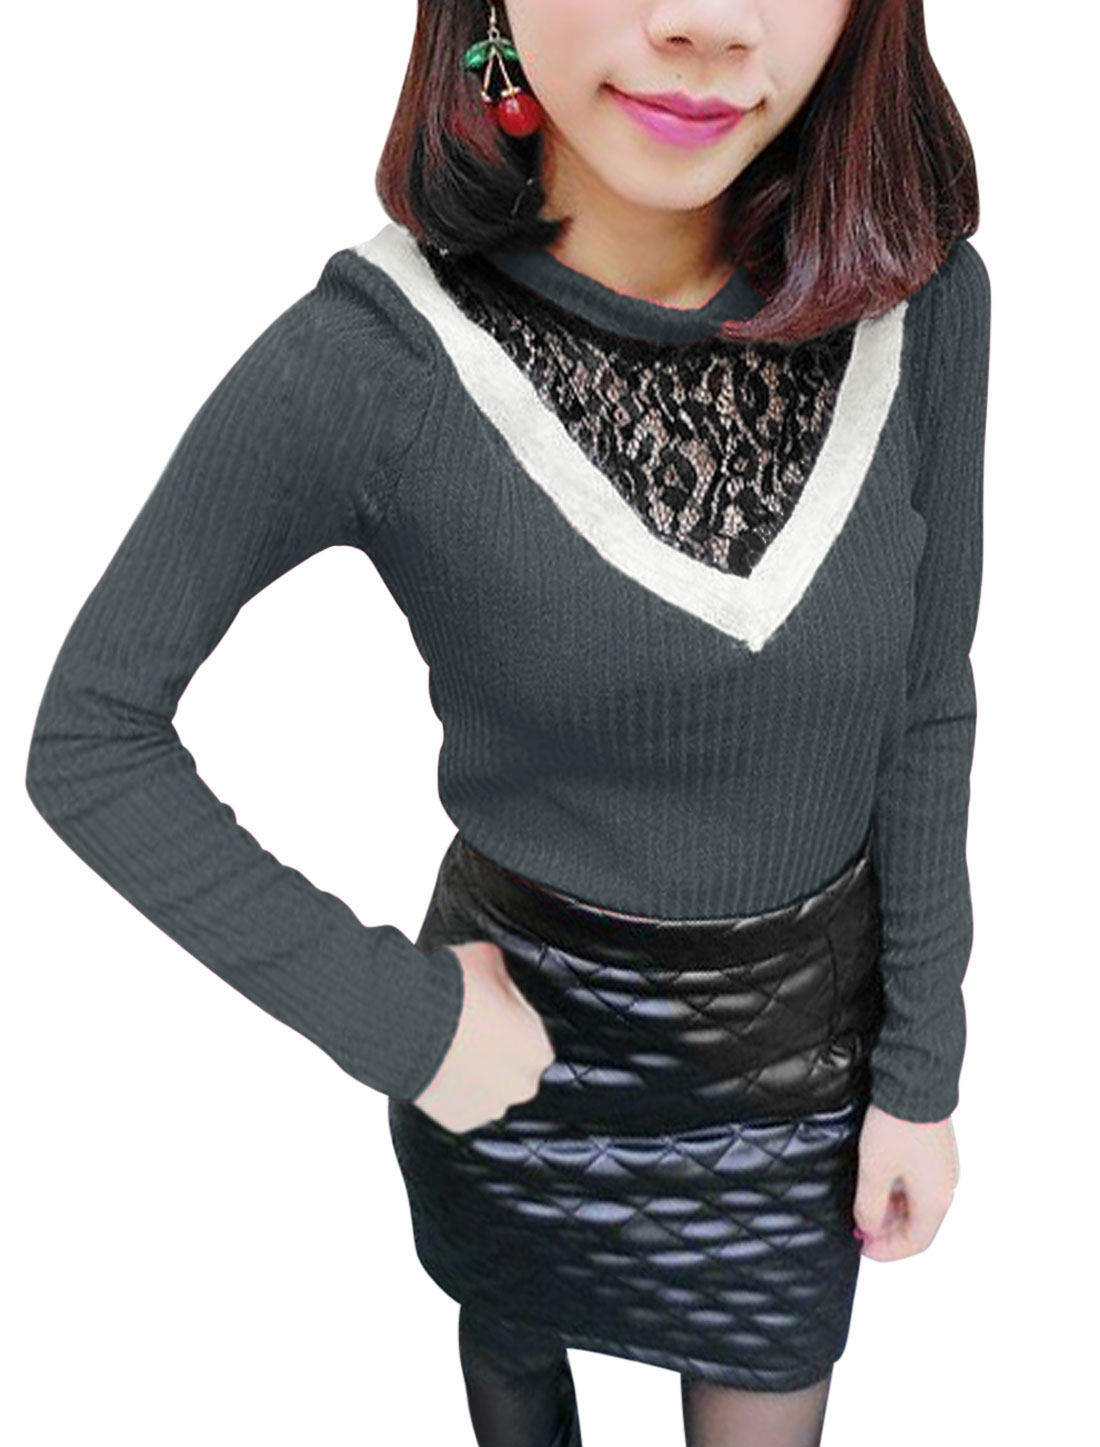 Lace Splicing Stretchy Crew Neck Dark Gray Knit Shirt for Lady XS